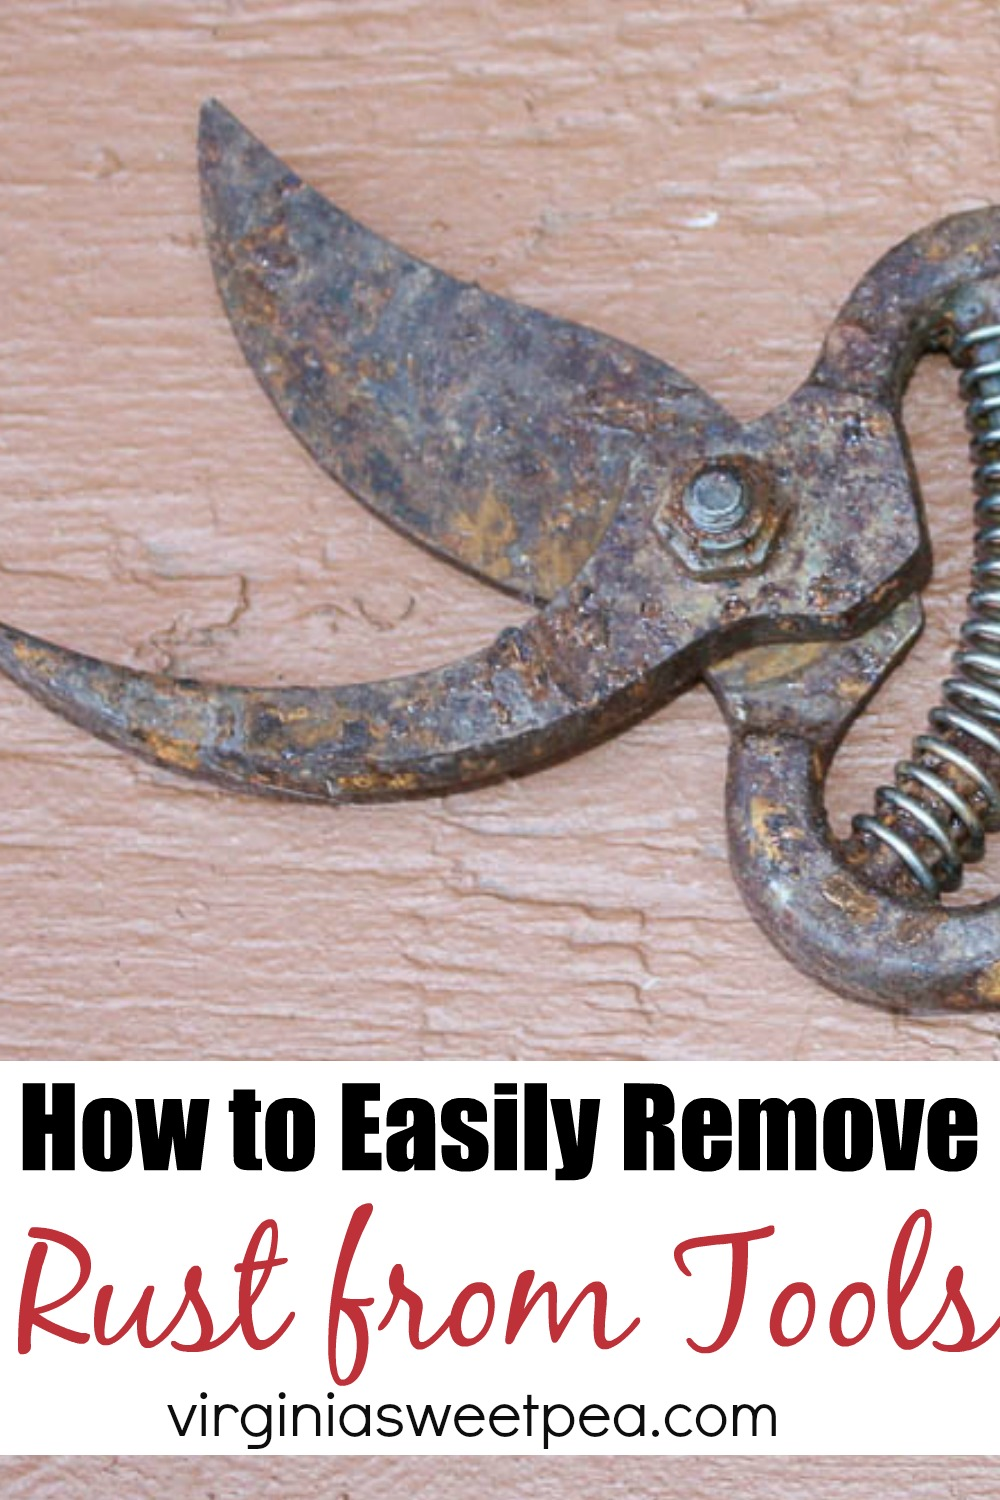 How to Easily Remove Rust from Tools - Follow these easy steps to remove rust from tools.   via @spaula